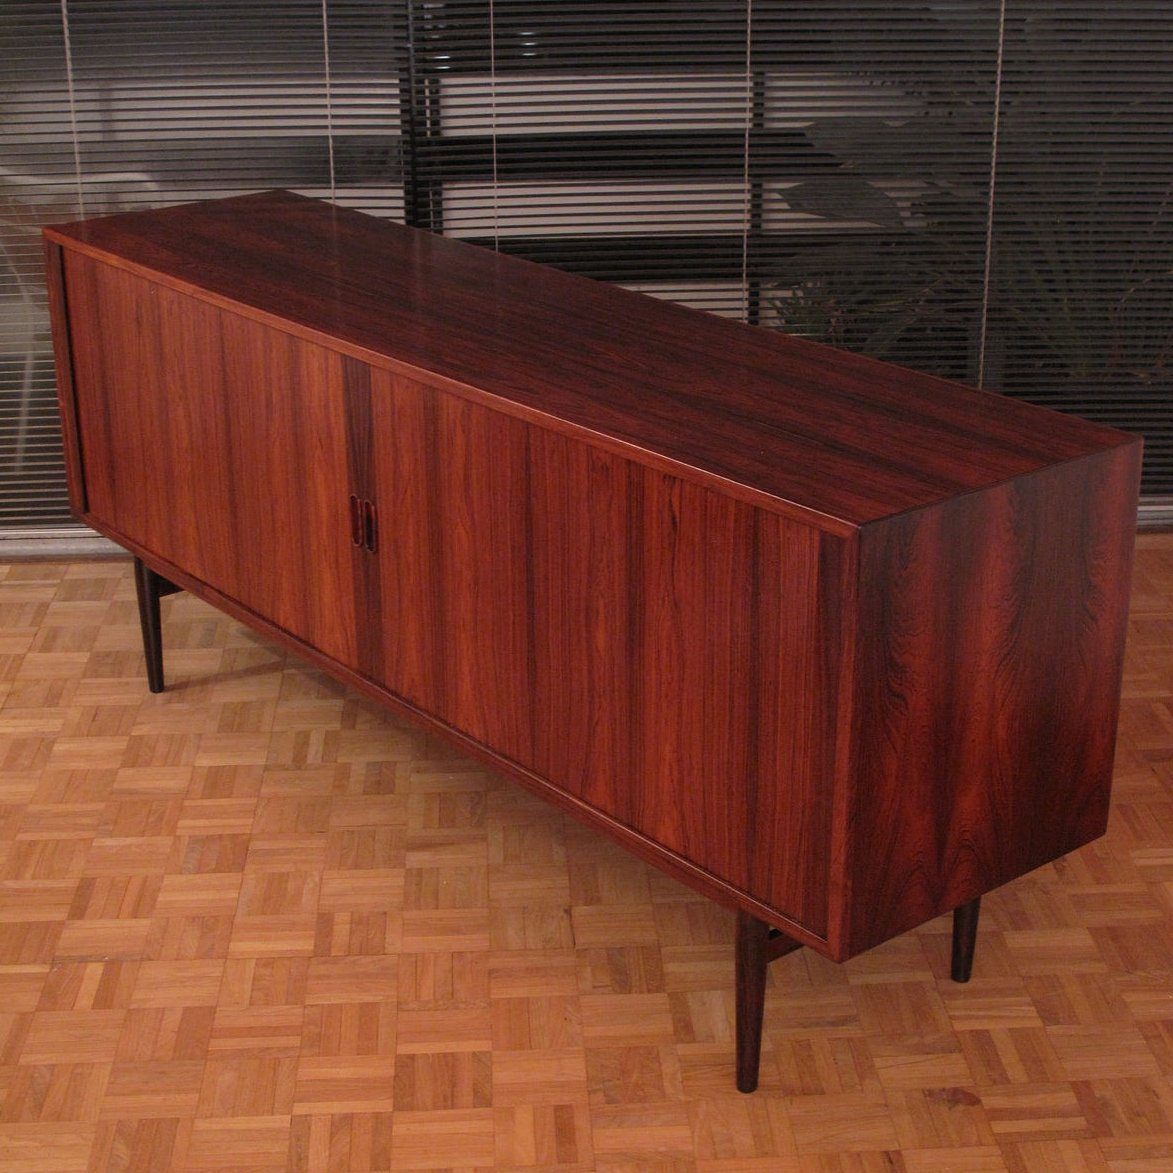 Arne Vodder Model 37 Brazilian Rosewood Sideboard